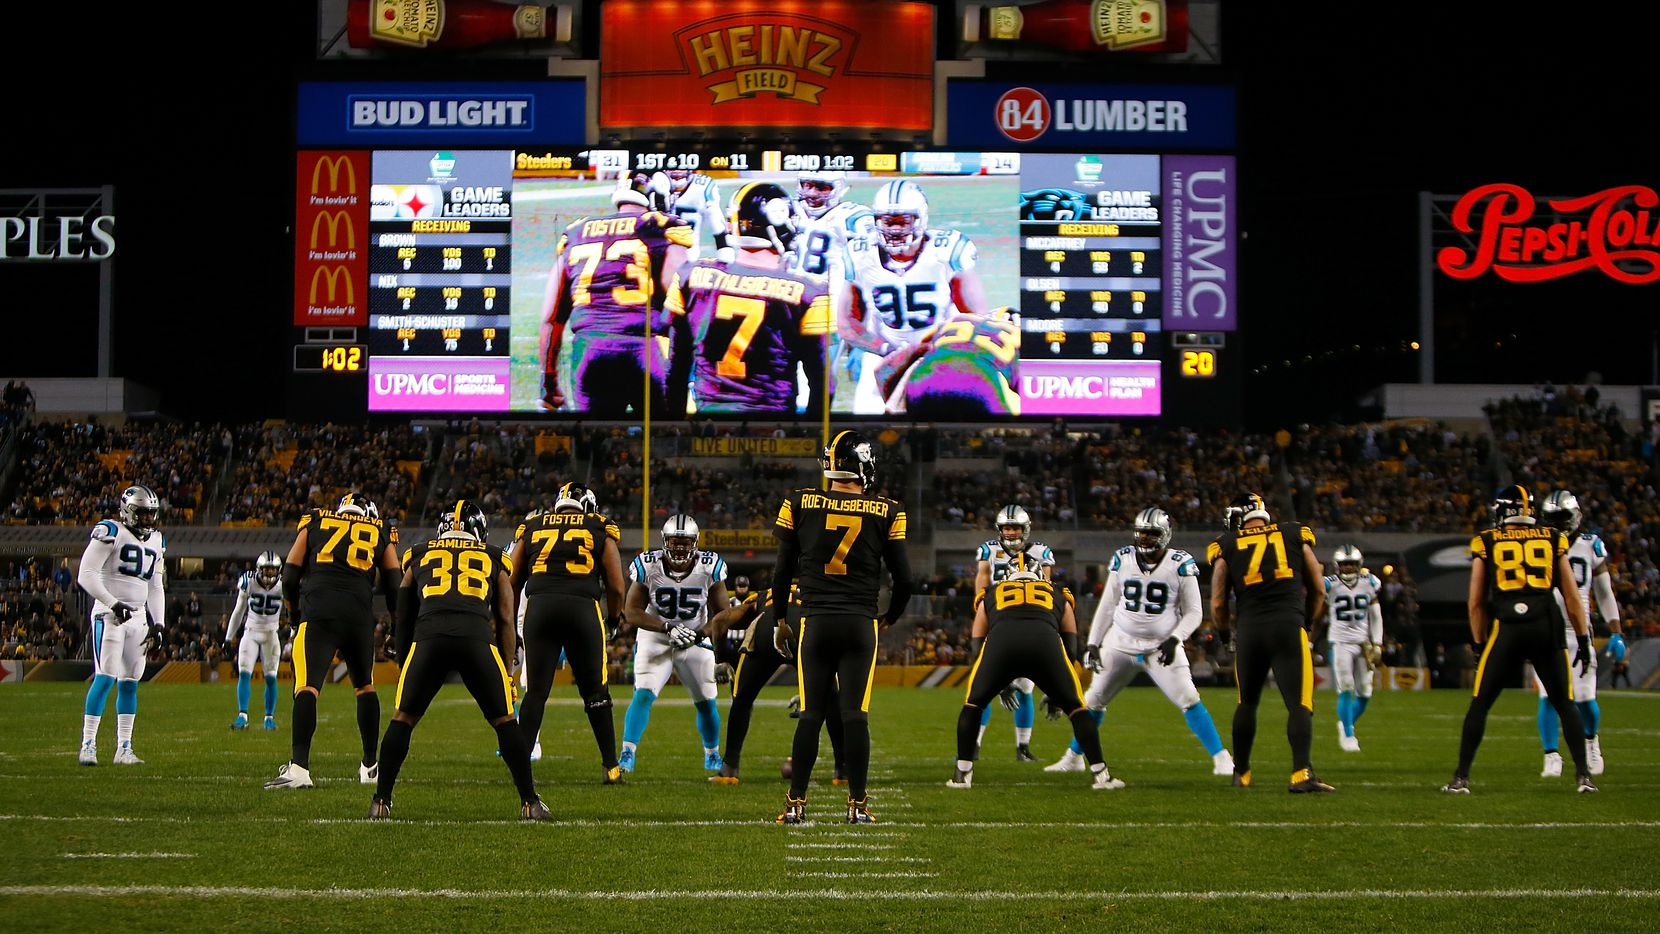 Ben Roethlisberger of the Pittsburgh Steelers lines up under center during the second quarter in the game against the Carolina Panthers at Heinz Field on Nov. 8.